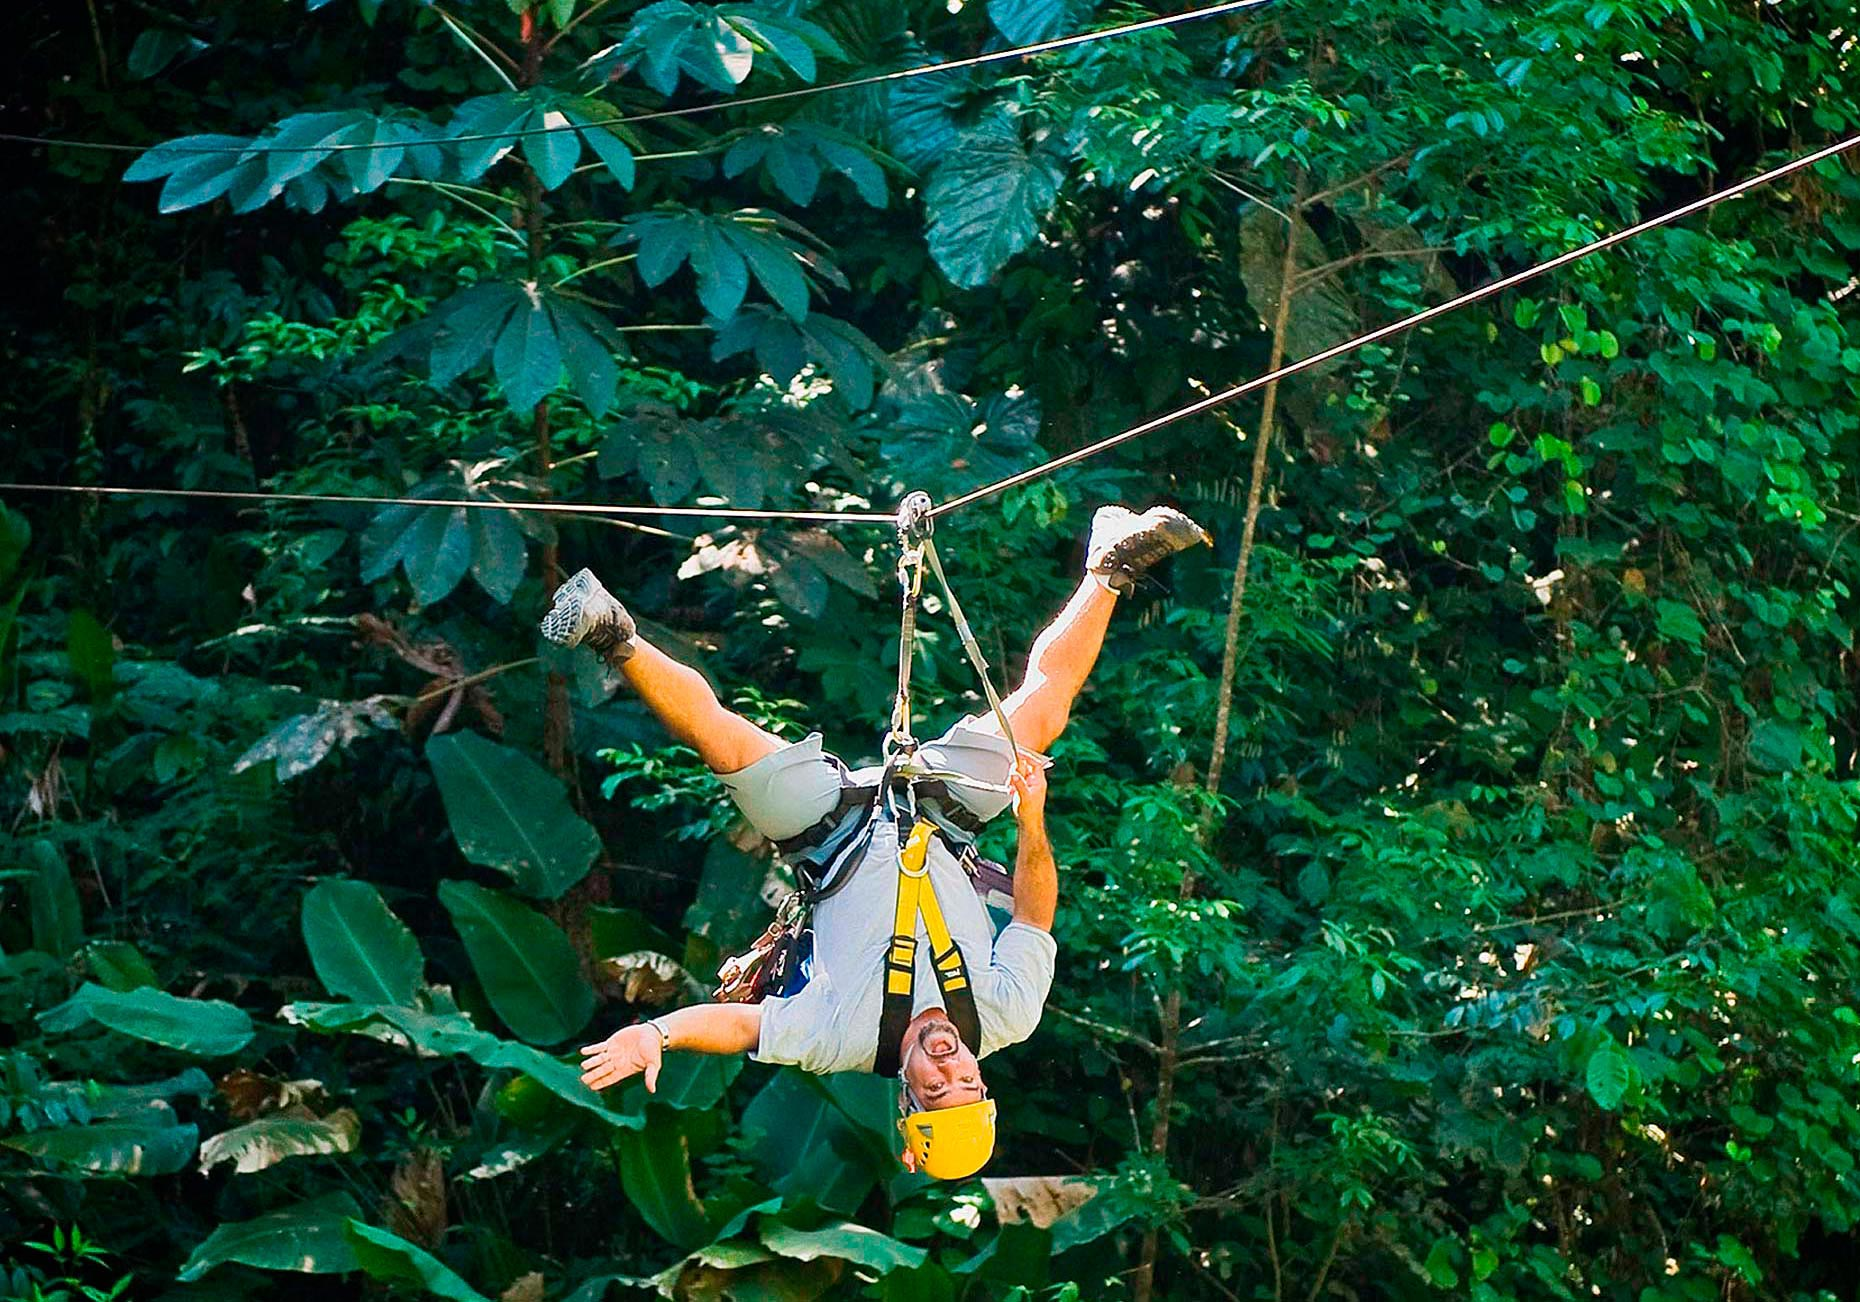 FEA_PhotoReporters_Zip-lining-through-forest_Costa-Rica